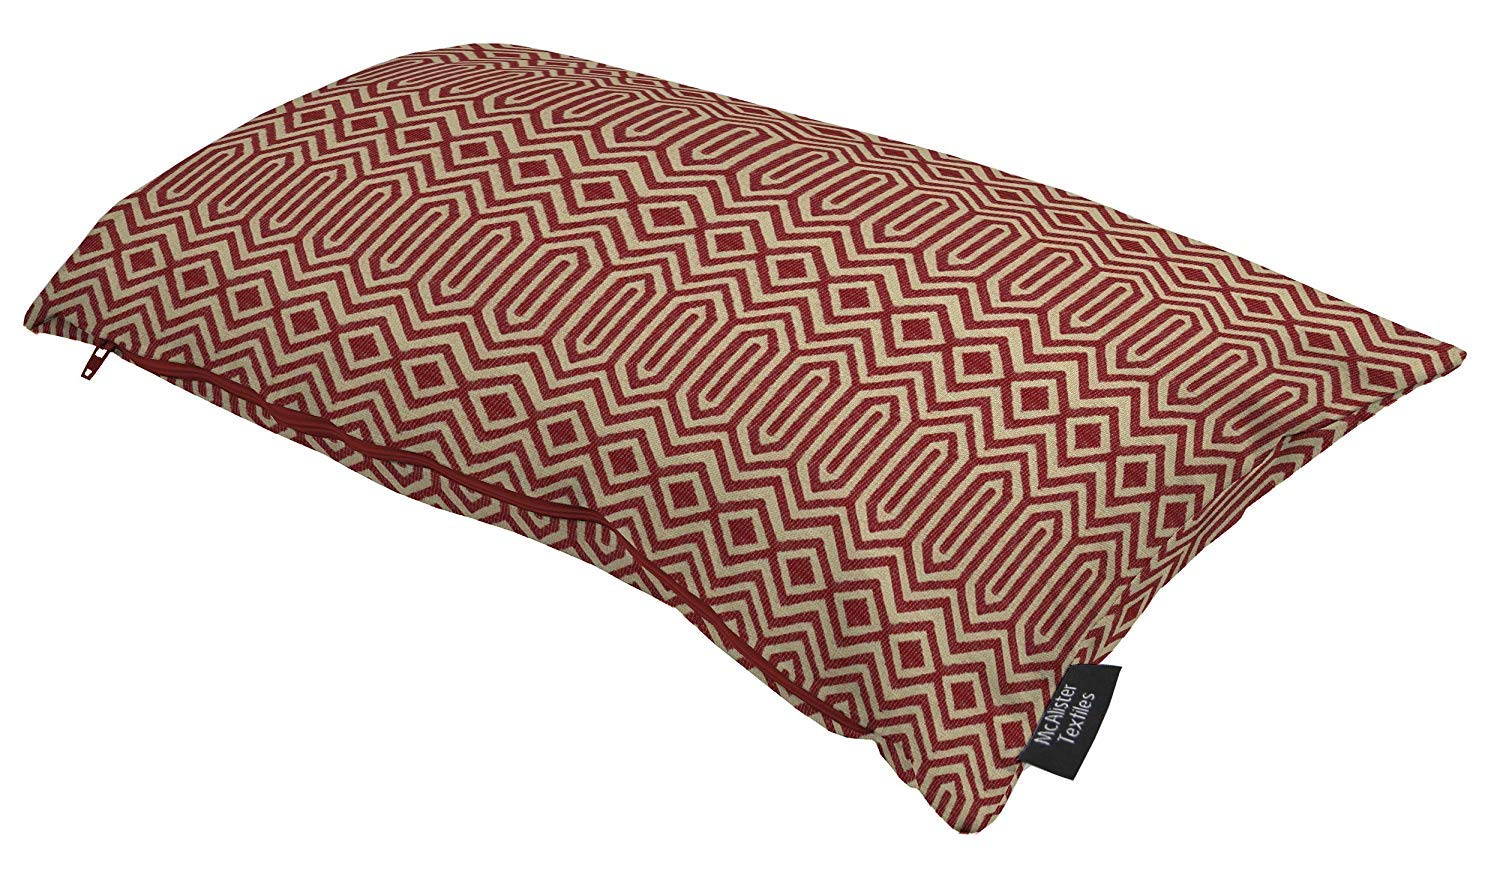 McAlister Textiles Colorado Filled Pillow Red Aztec Geometric Tribal Decorative Throw Scatter Sofa Cushion Sham Size – 12 x 20 Inches